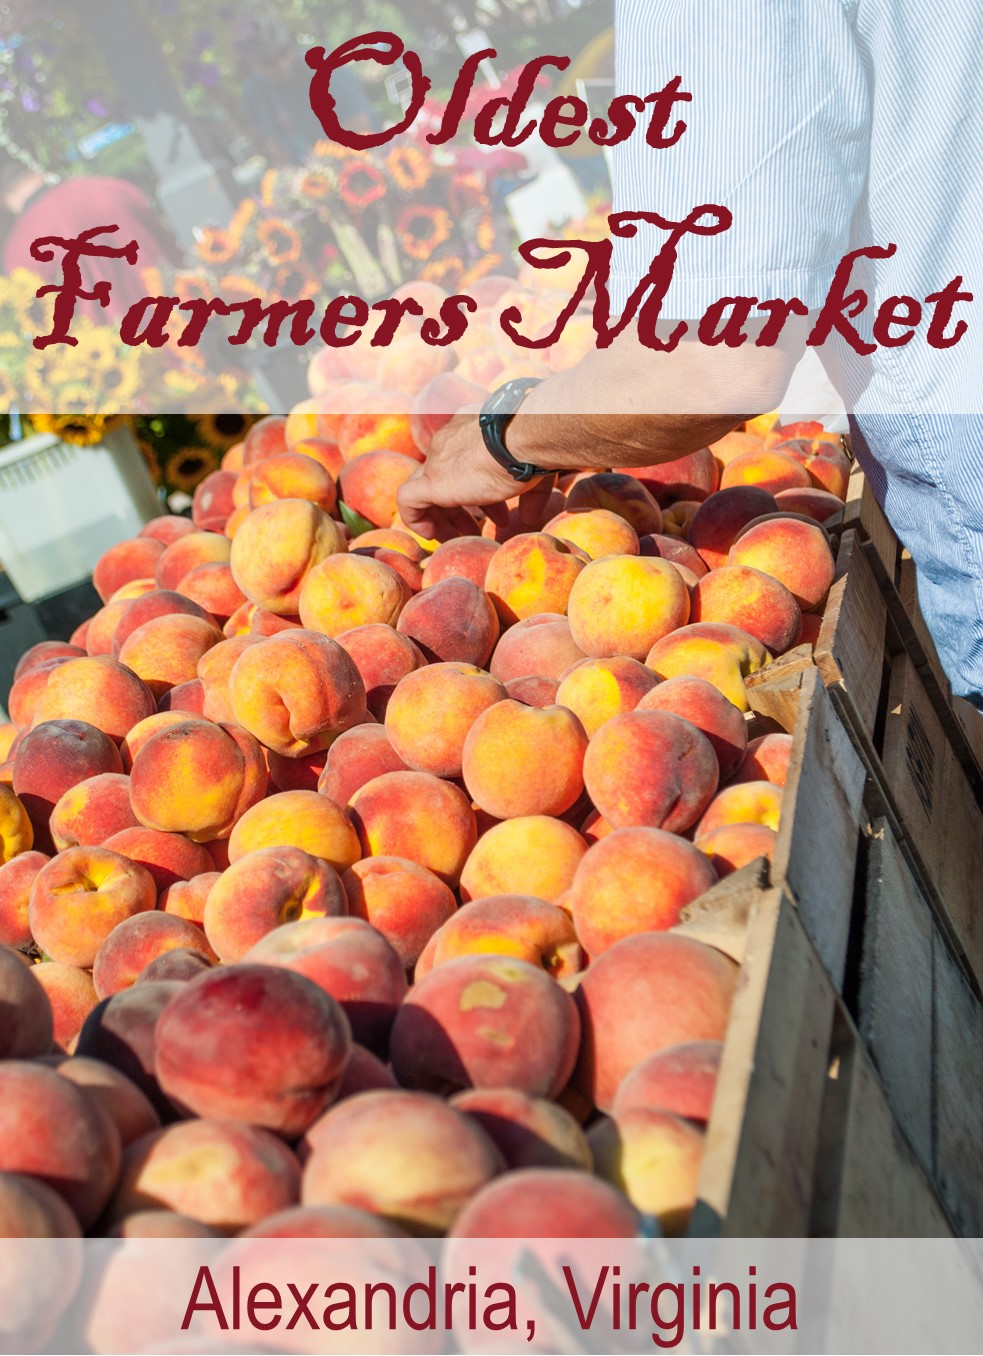 Old Town Farmers Market in Alexandria, Virginia